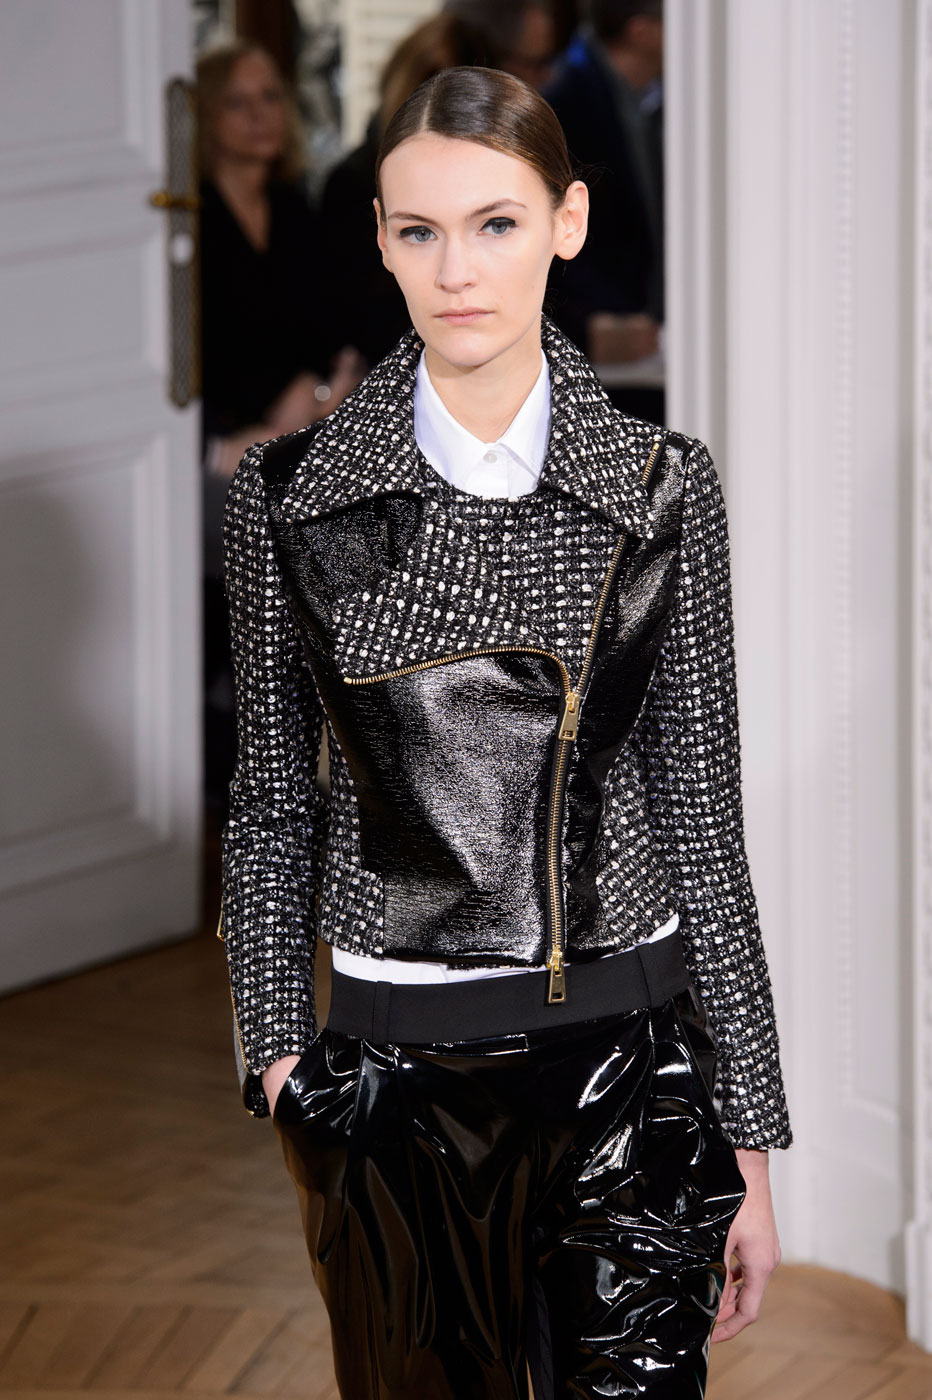 Bouchra-Jarrar-fashion-runway-show-haute-couture-paris-spring-summer-2015-the-impression-02